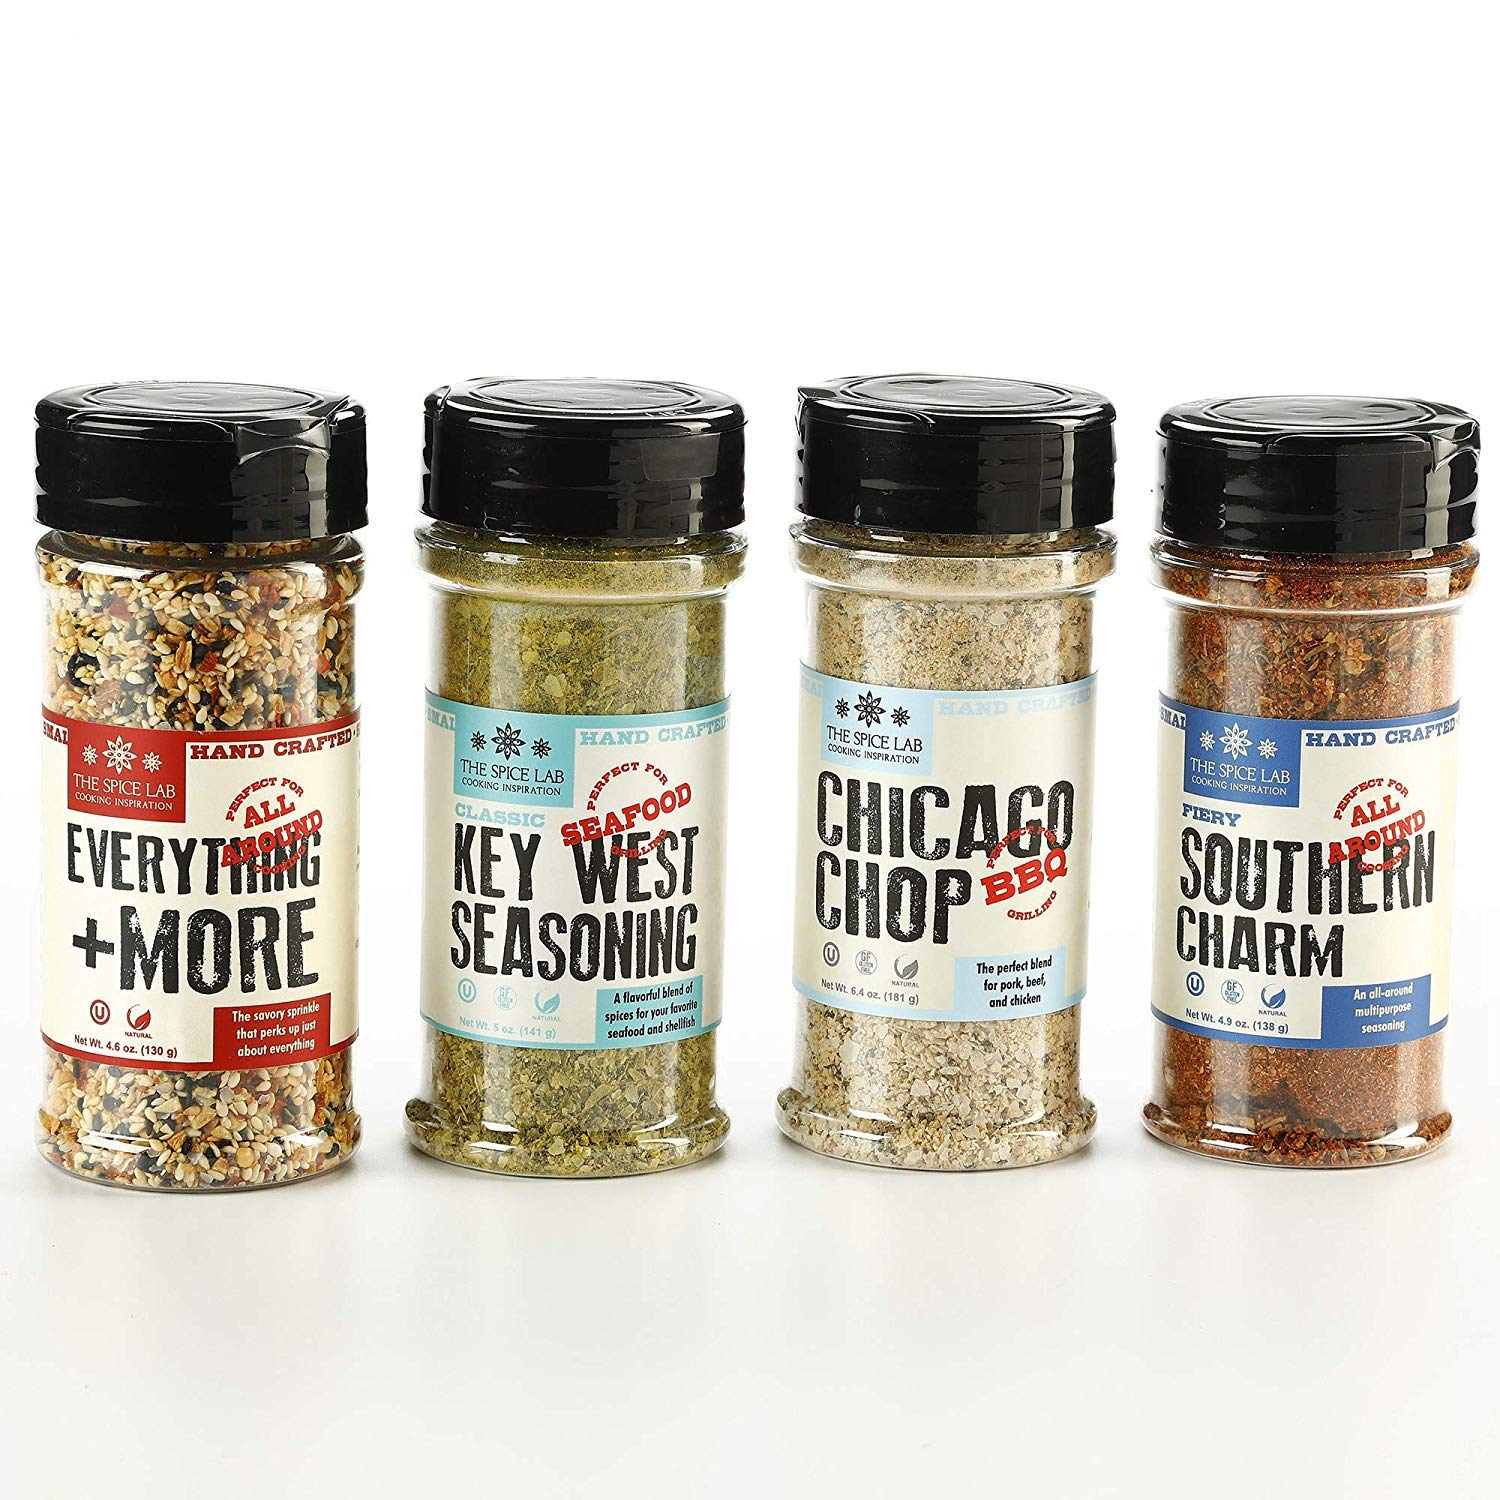 The Spice Lab Taste of America Spices and Seasonings Set. Chicago Chop Seasoning, Key West Seafood Seasoning, Fiery Southern Charm & Everything and More Seasoning. Make your new favorite dishes with delicious all-American seasoning blends that have so much value packed into one gift collection.. 2020 Valentine's Day Gift Guide from Jays Sweet N Sour Life Blog.